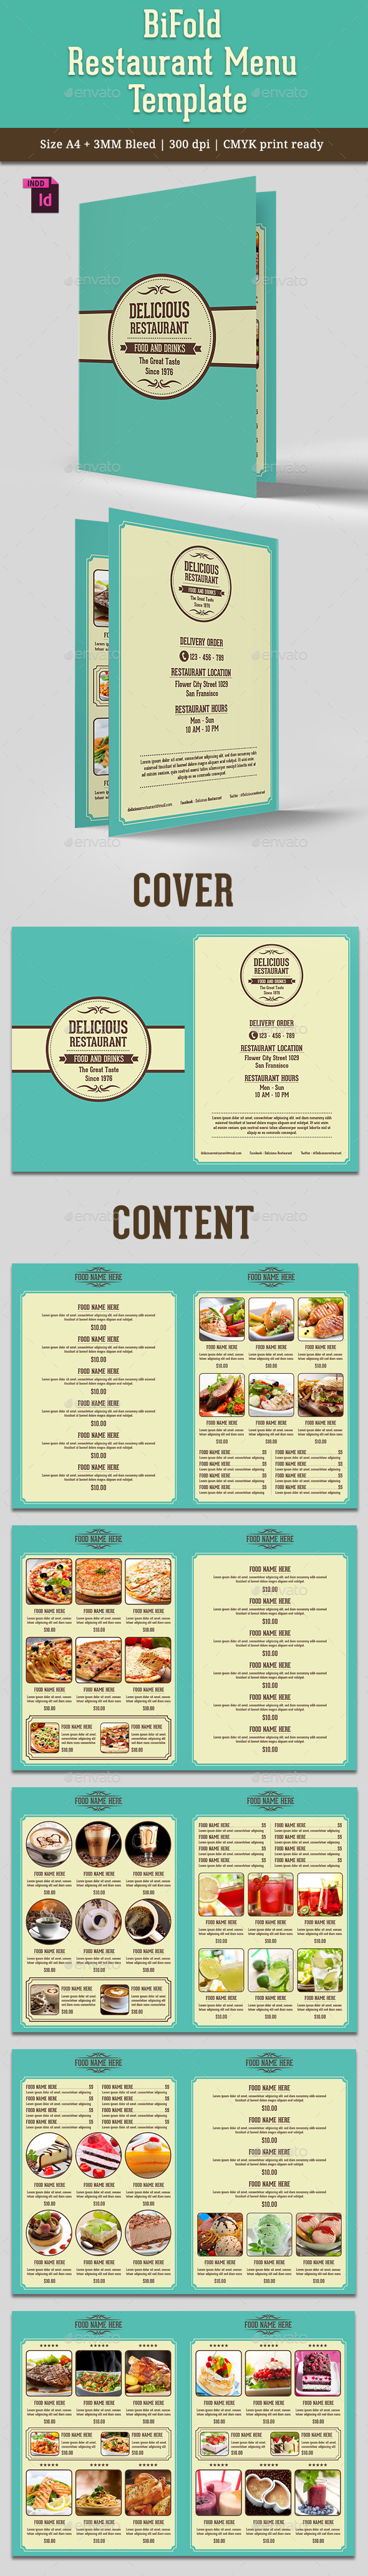 GraphicRiver BiFold Restaurant Menu Vol 6 10591023